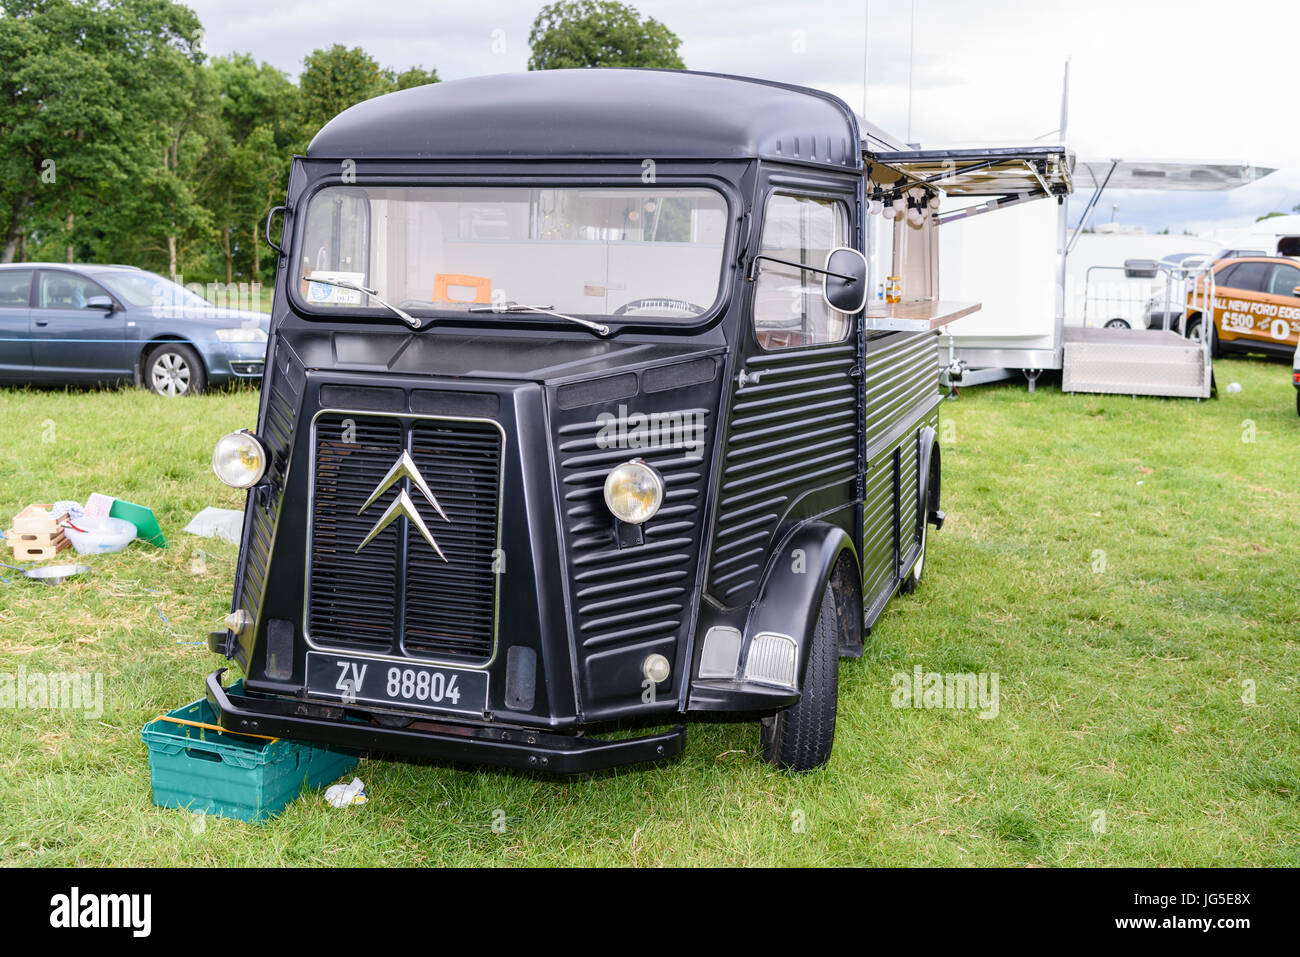 Citroen H Van converted into a mobile catering coffee van at an outdoor fair. - Stock Image